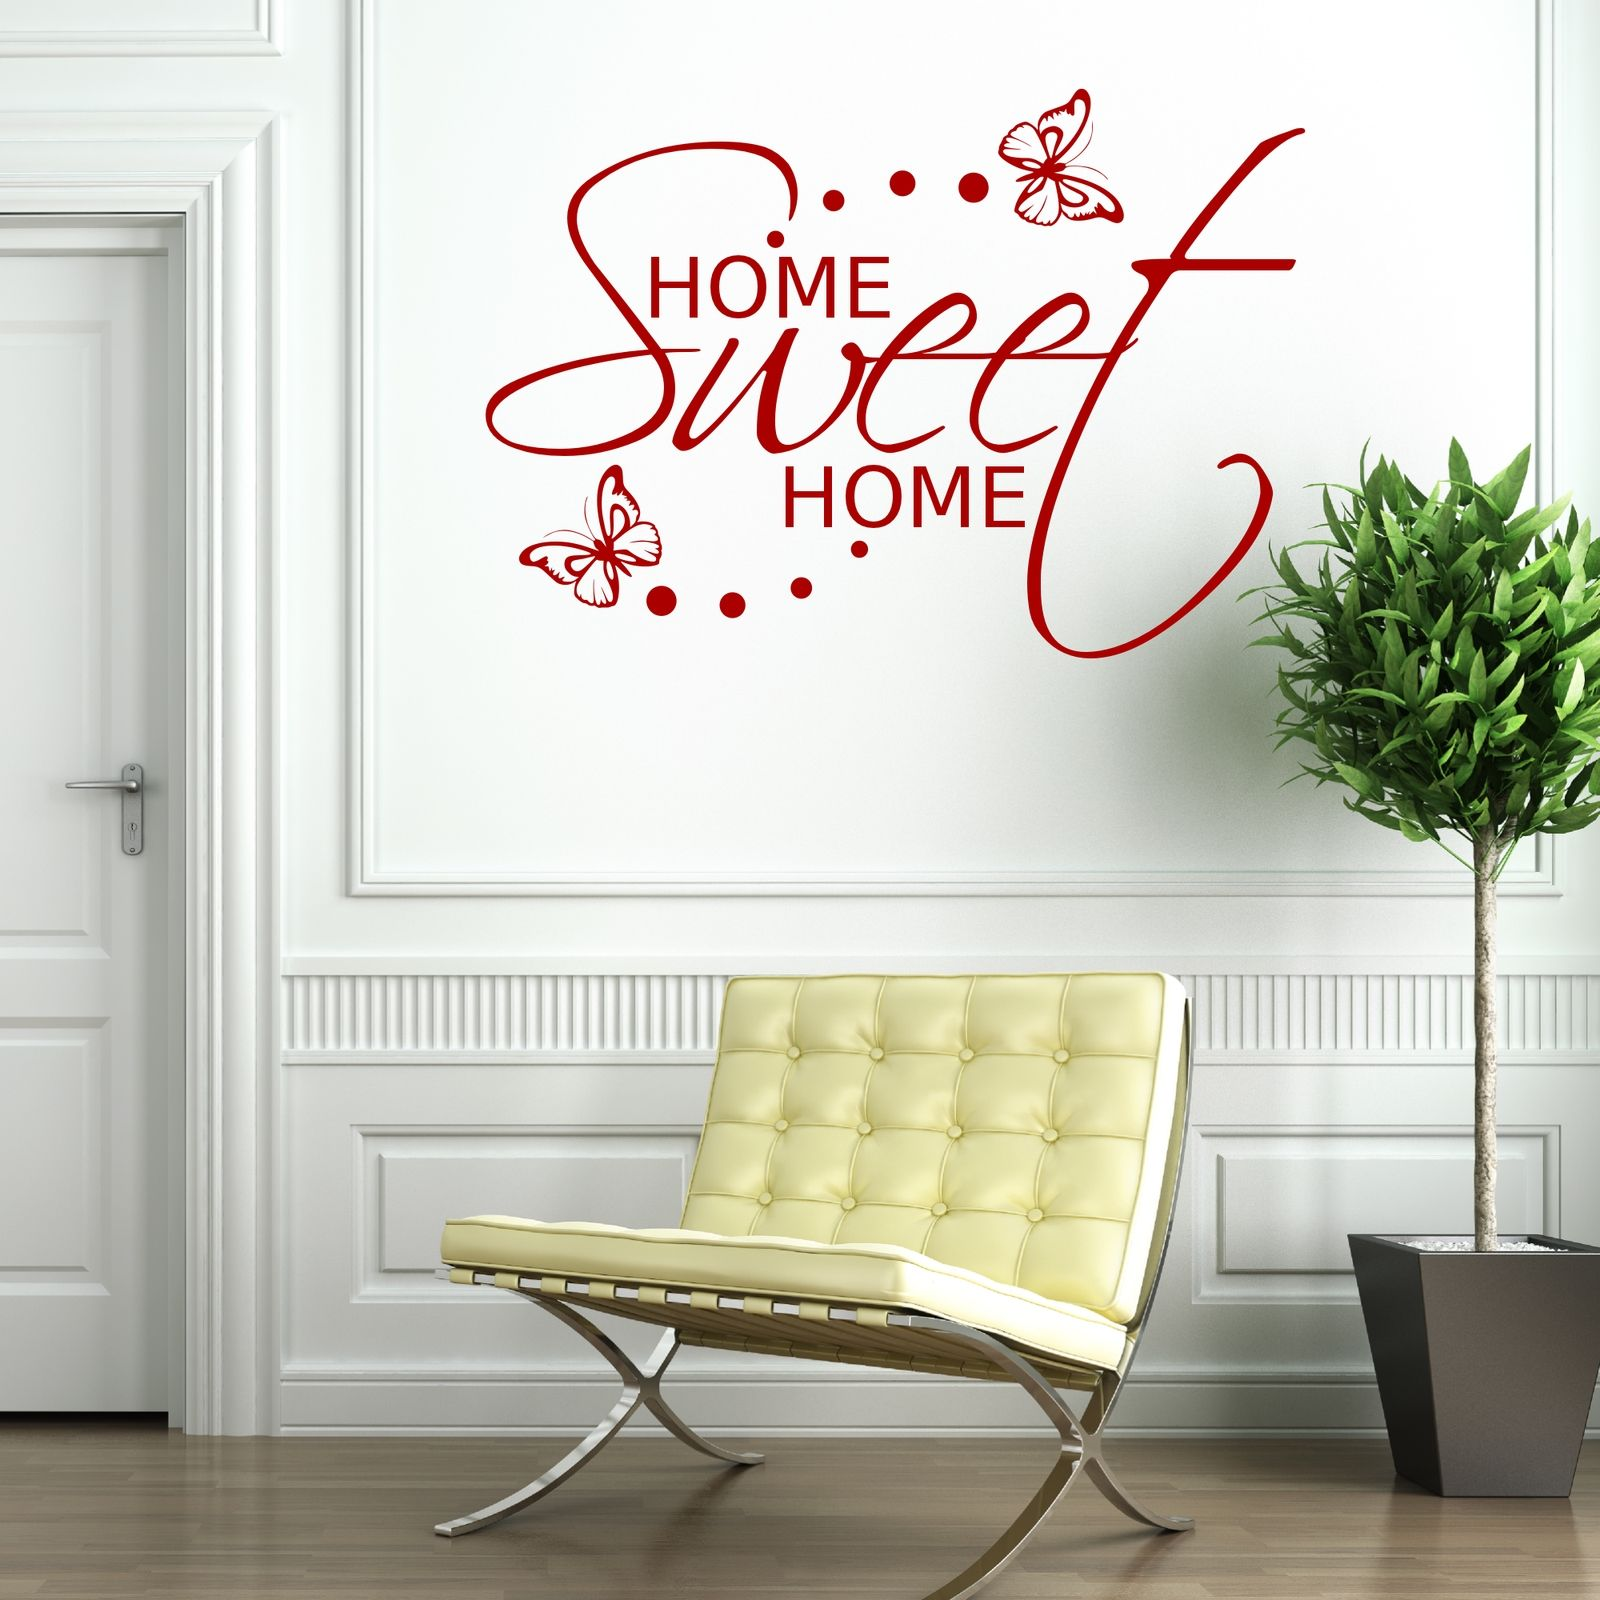 Home Sweet Home Wall Sticker Art Room Gift Decal Mural Transfer